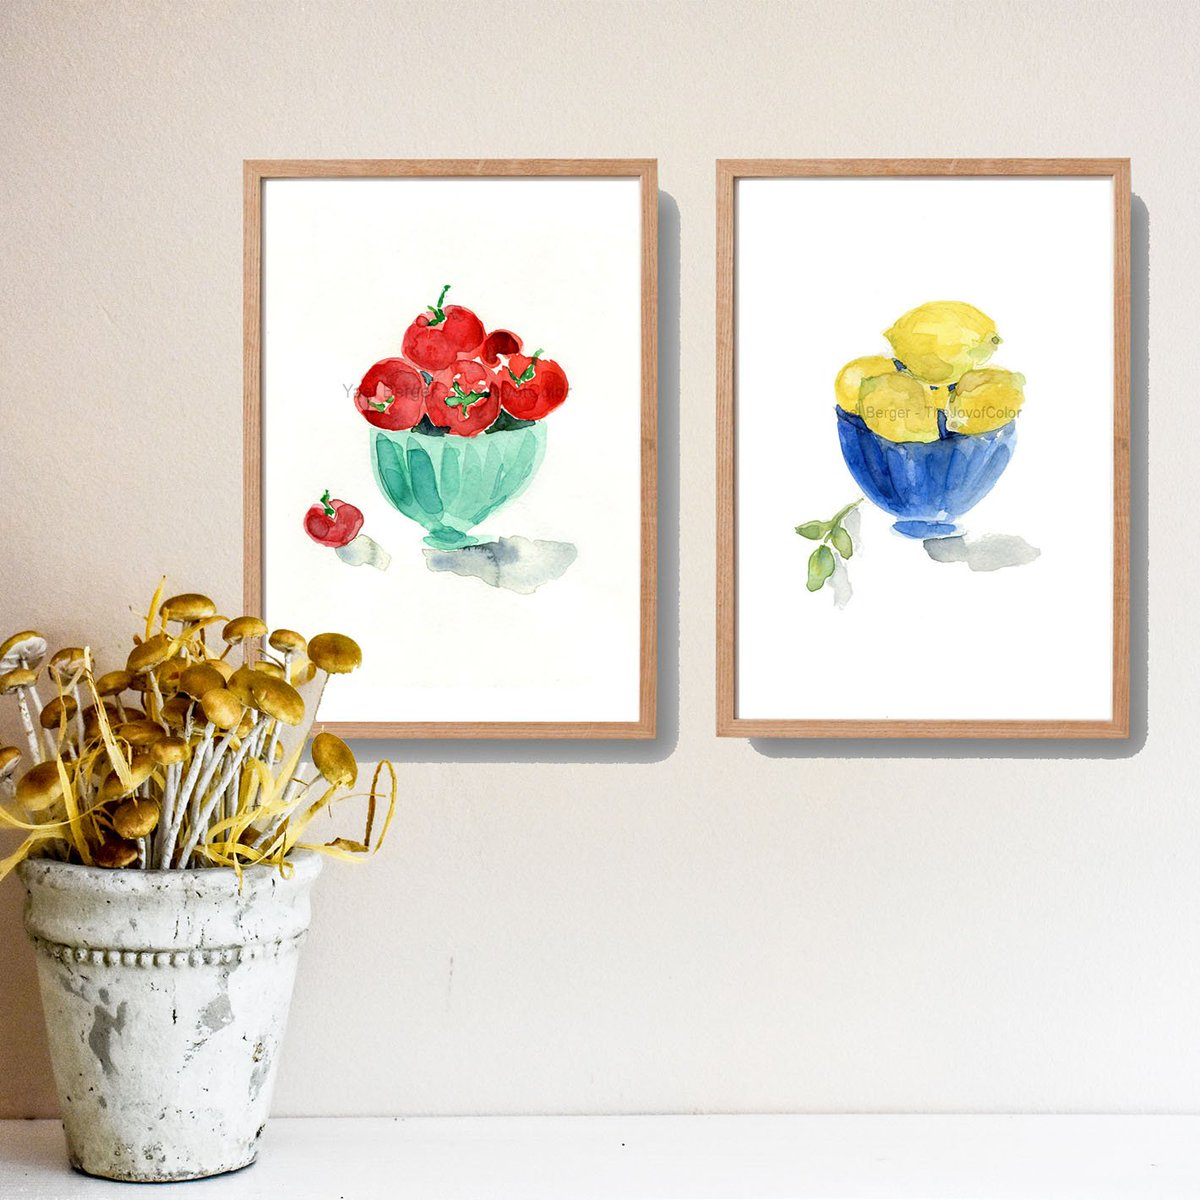 Kitchen art prints tomatoes and lemons   https://www. etsy.com/thejoyofcoor/l isting/495583681/two-kitchen-art-2-prints-set-tomatoes-in?ref=pr_shop &nbsp; …   #kitchen #kitchenart #tomatoes #lemons #fresh #home #artwork #art #foodie<br>http://pic.twitter.com/DOVfhVD4lL